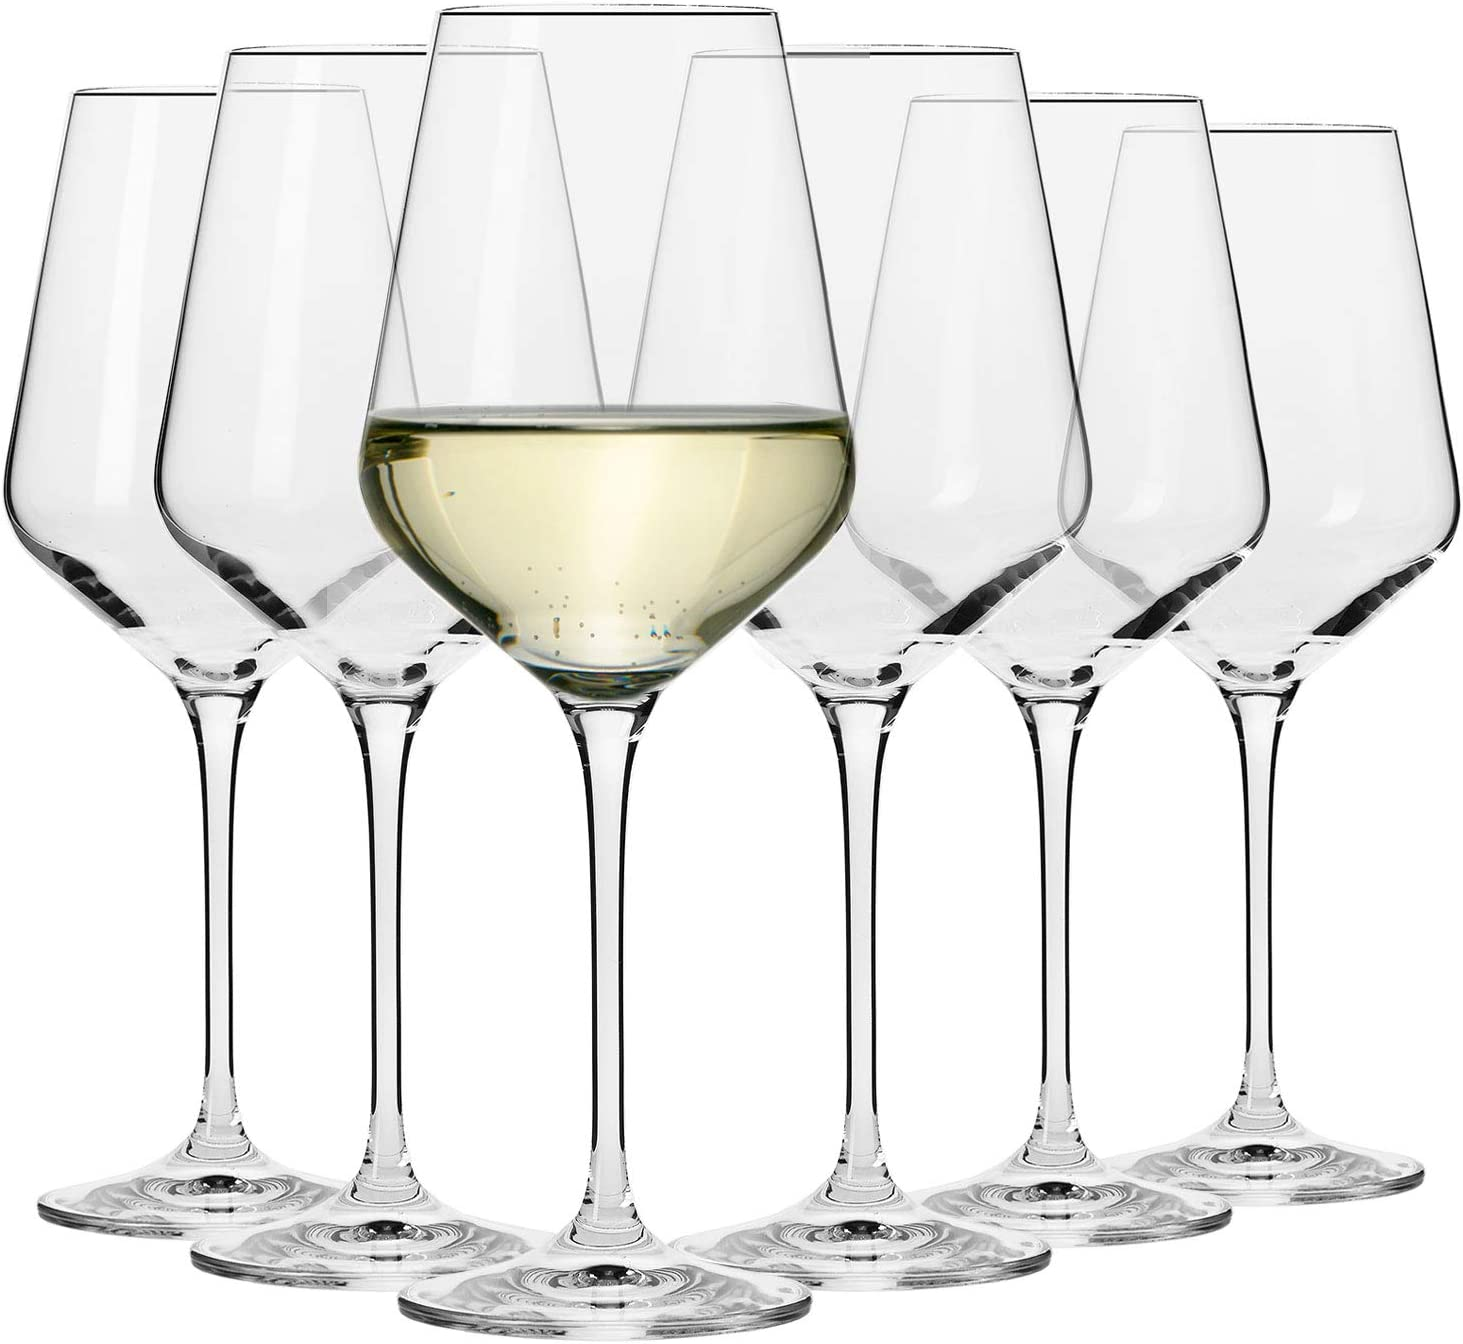 KROSNO Large White Wine Glasses | Set of 6 | 13.2 oz | Avant-Garde Collection | Crystal Glass | Perfect for Home, Restaurants and Parties | Dishwasher and Microwave Safe